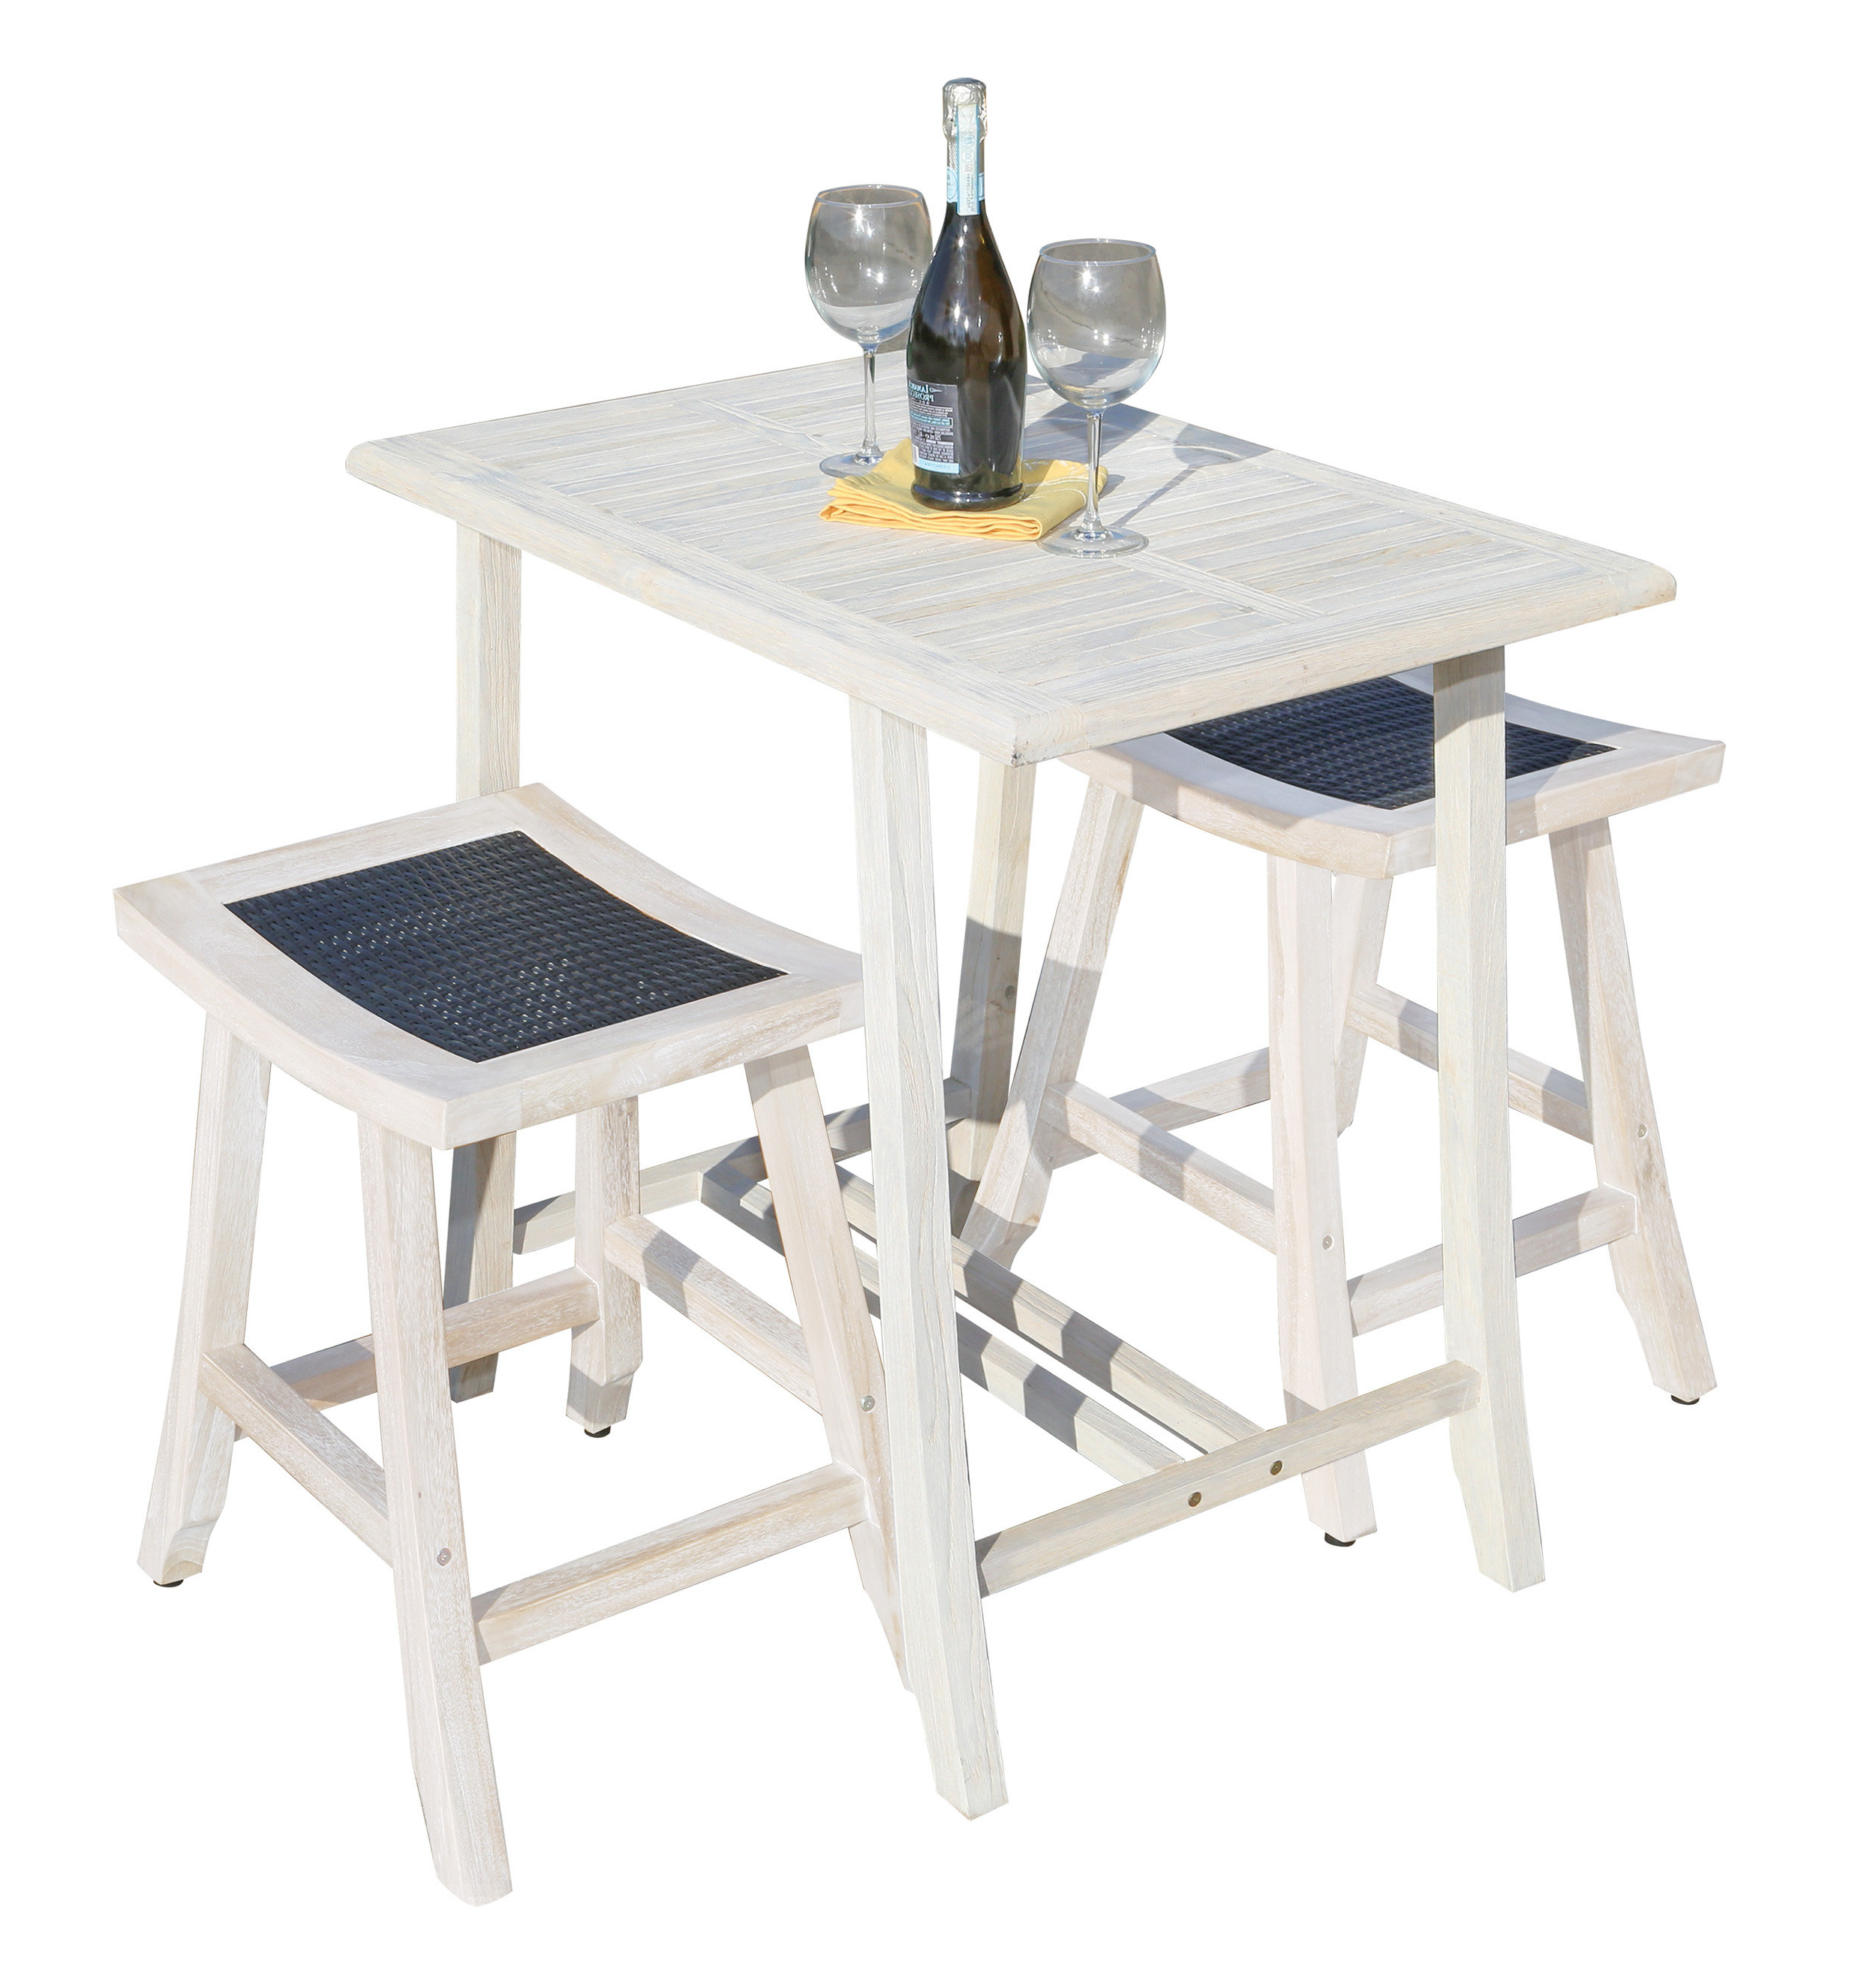 Ecodecors Satori 3 Piece Pub Table Set